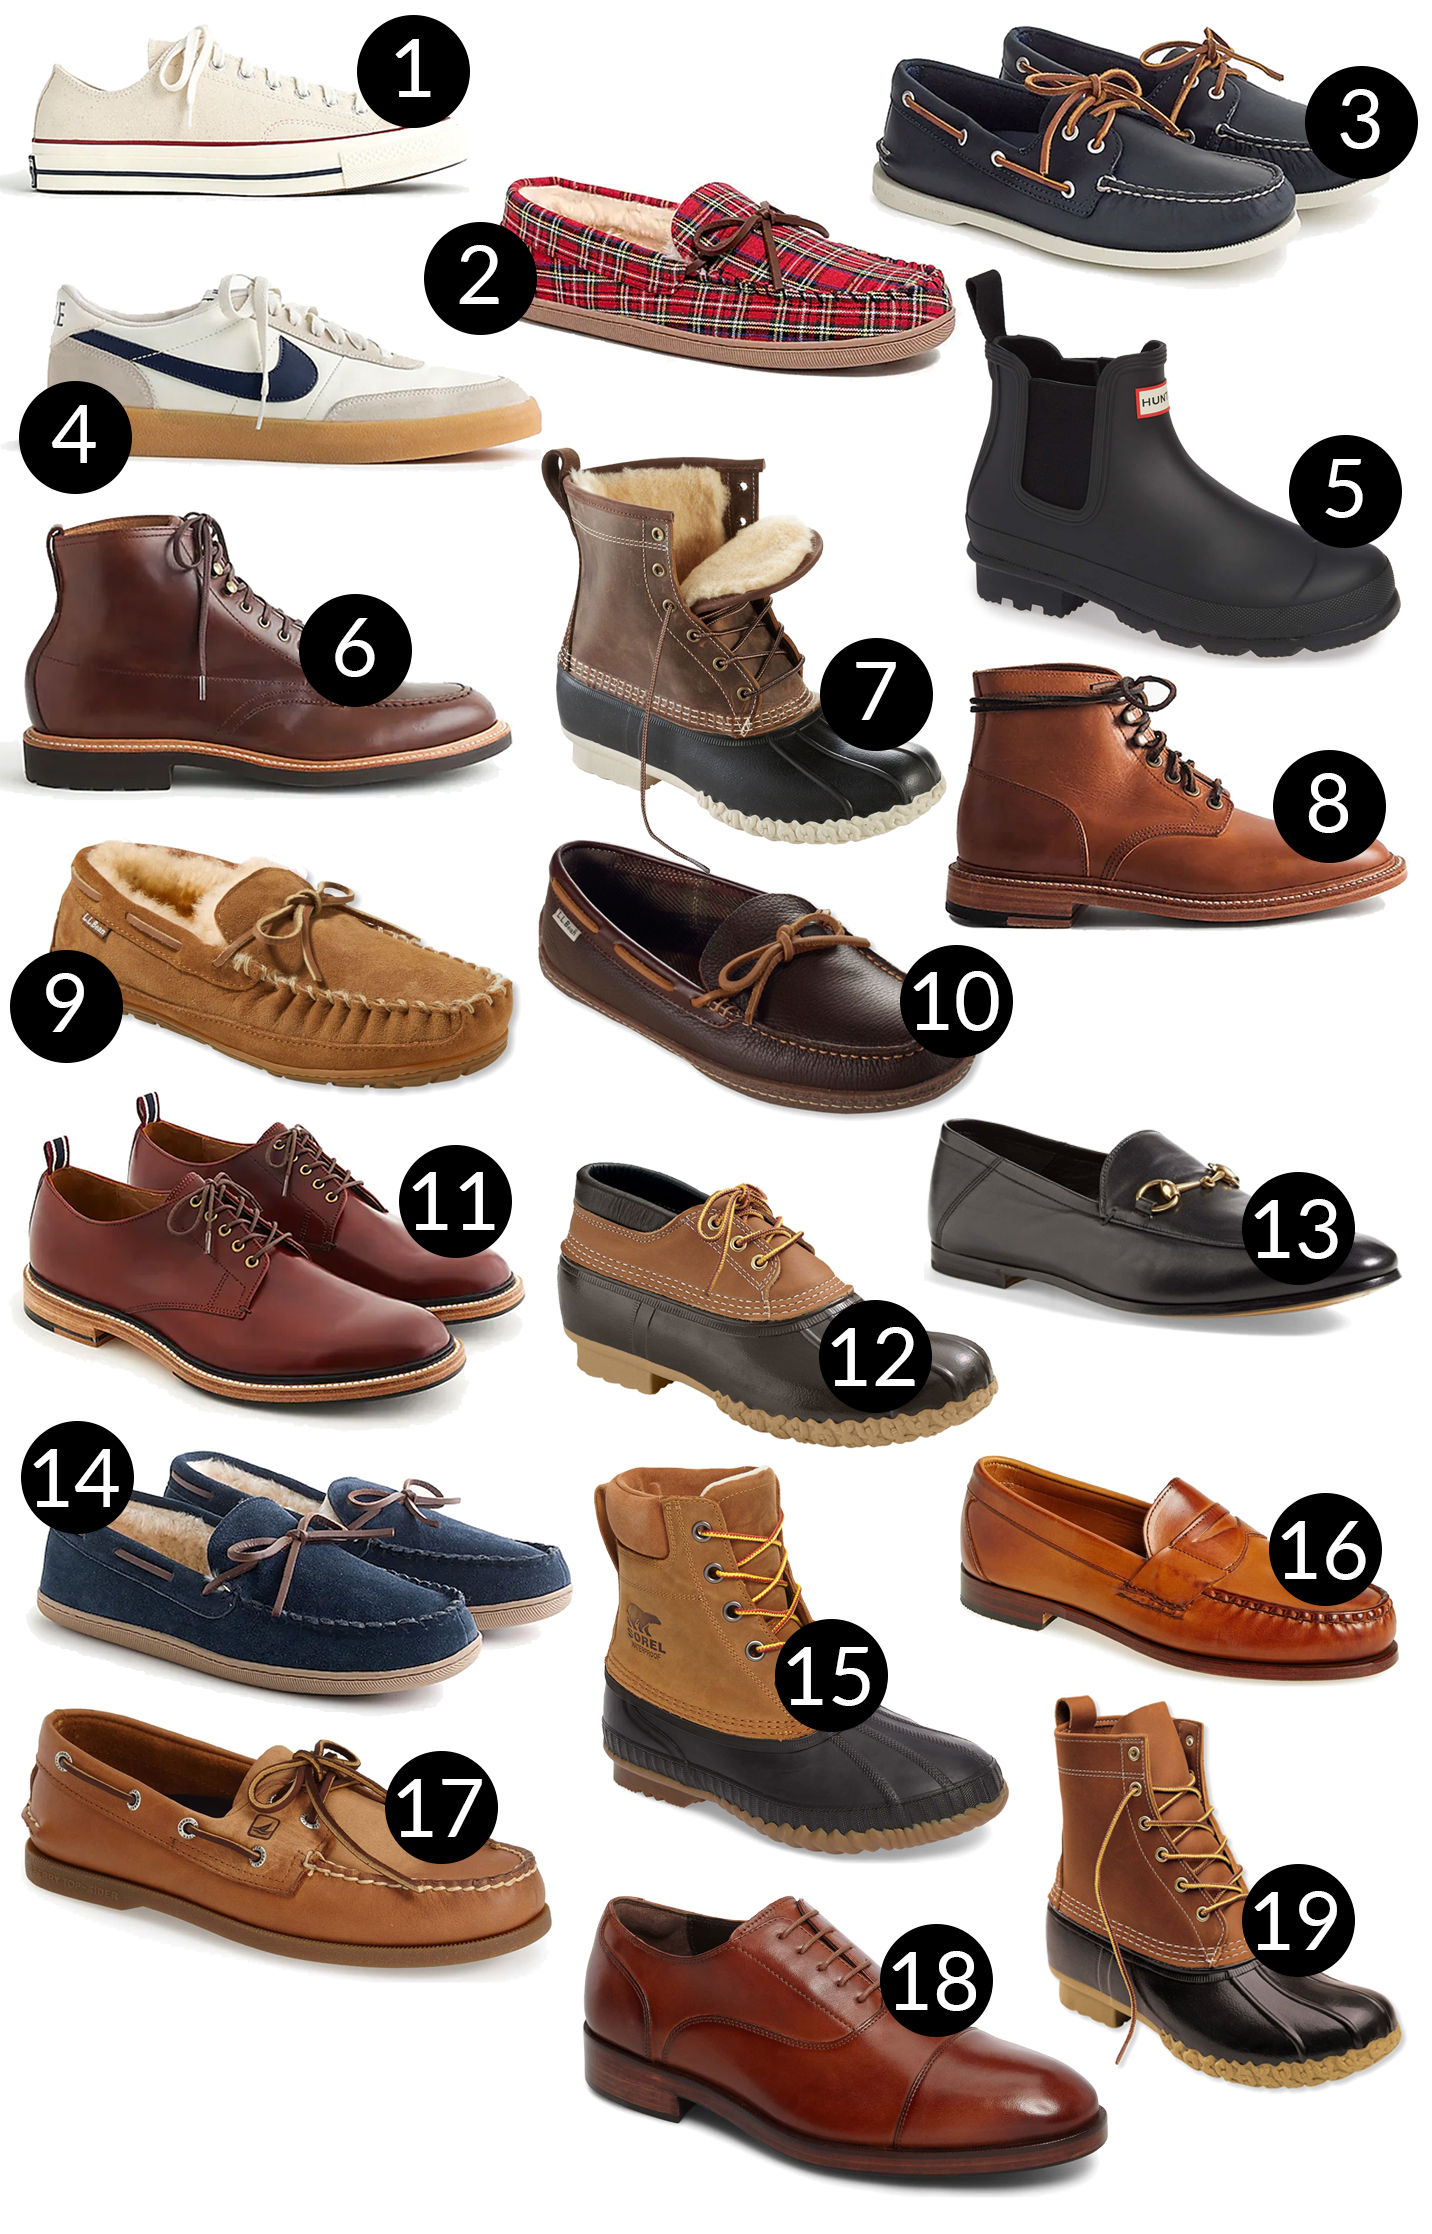 Mens Holiday Gift Guide - Shoes